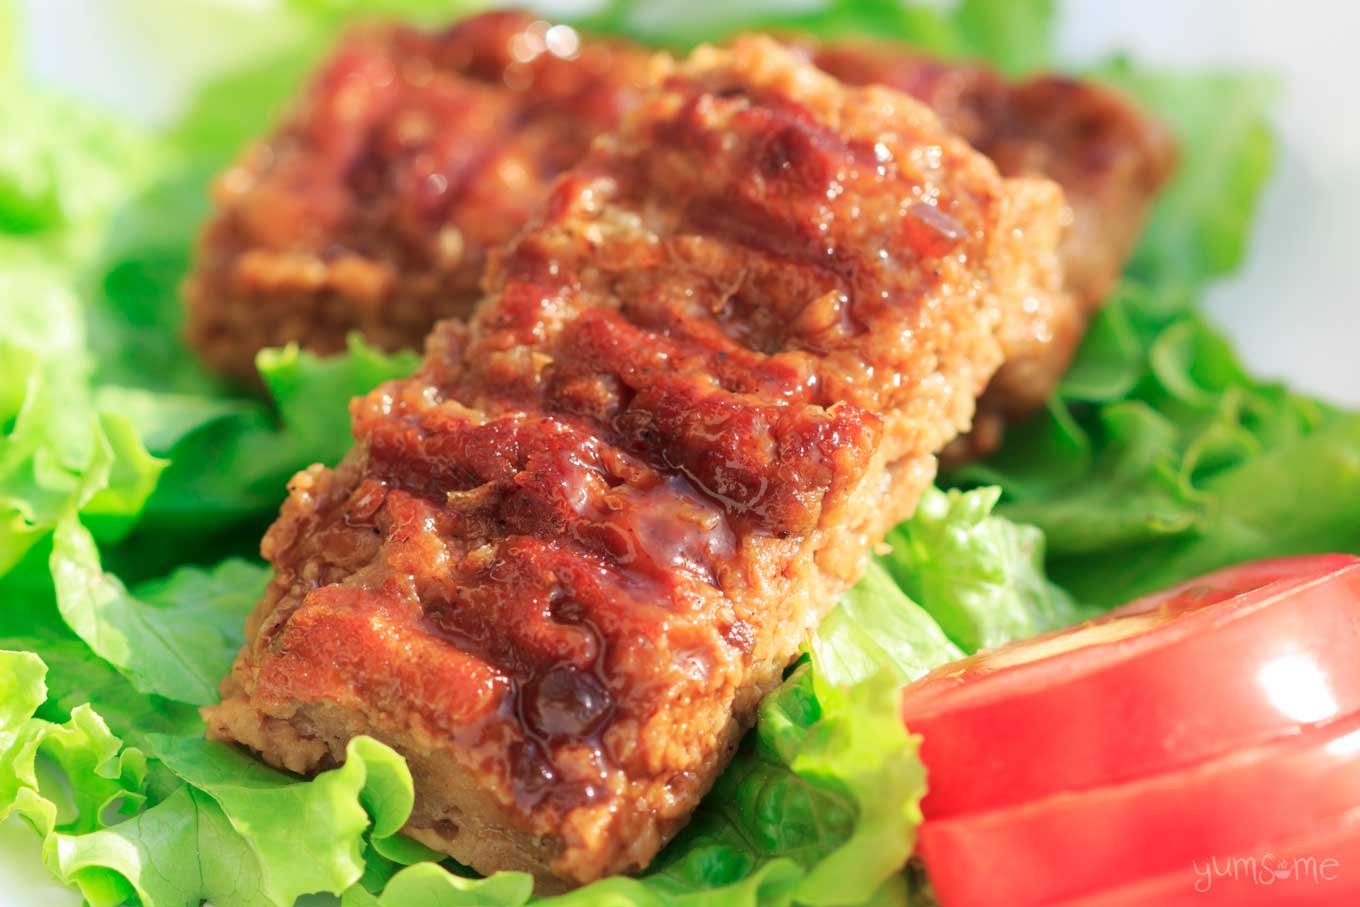 Vegan bbq ribs on a bed of lettuce..